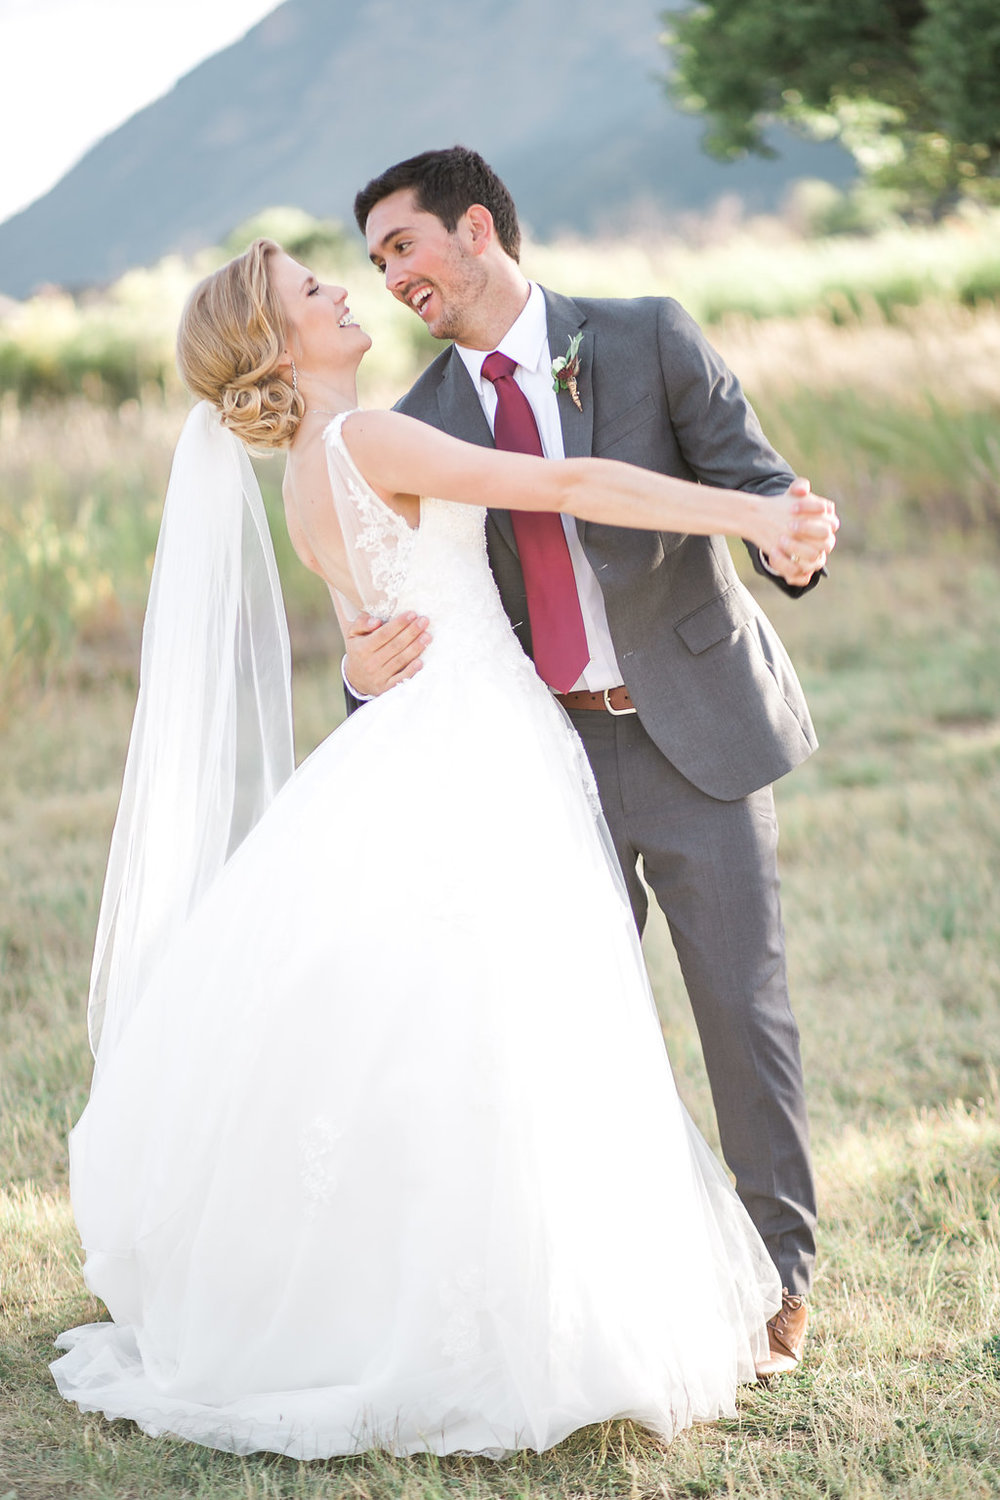 MichelewithoneL|ColoradoSpringsWeddingPhotographer-3625.jpg